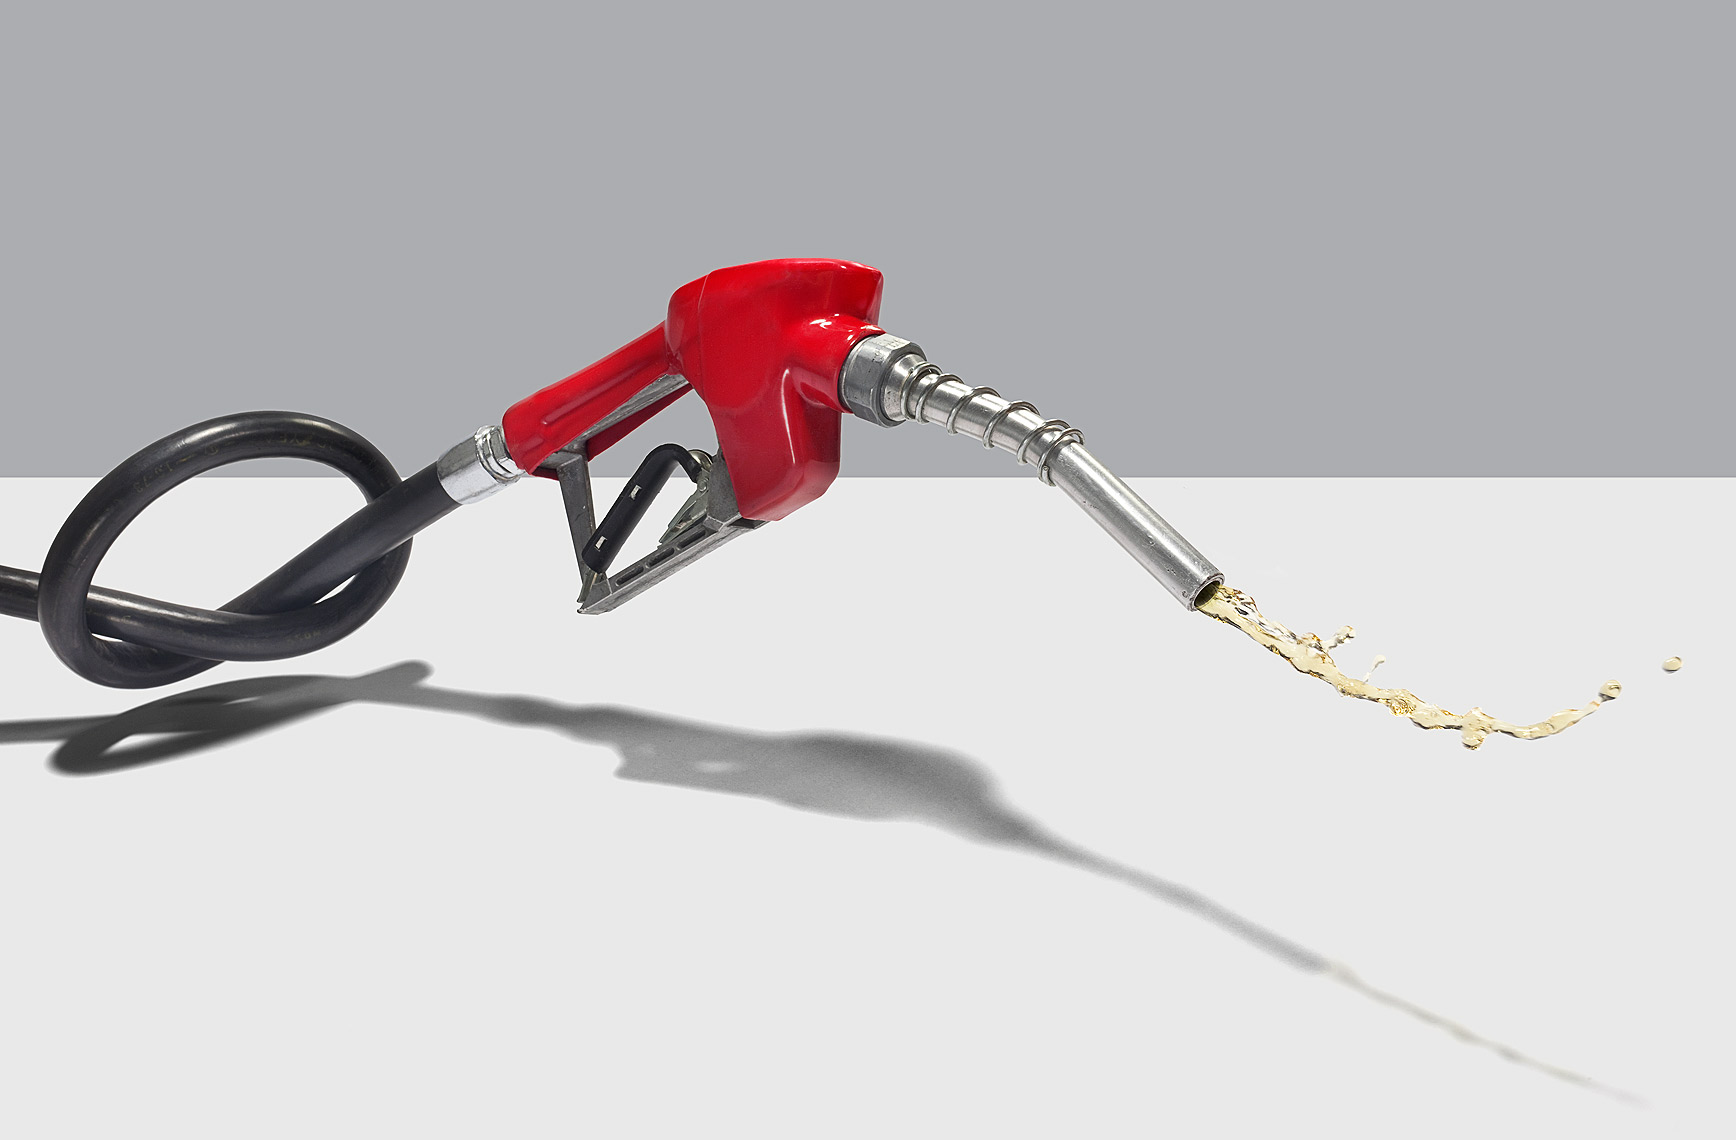 Knotted gas pump hose conceptual photo by John Kuczala